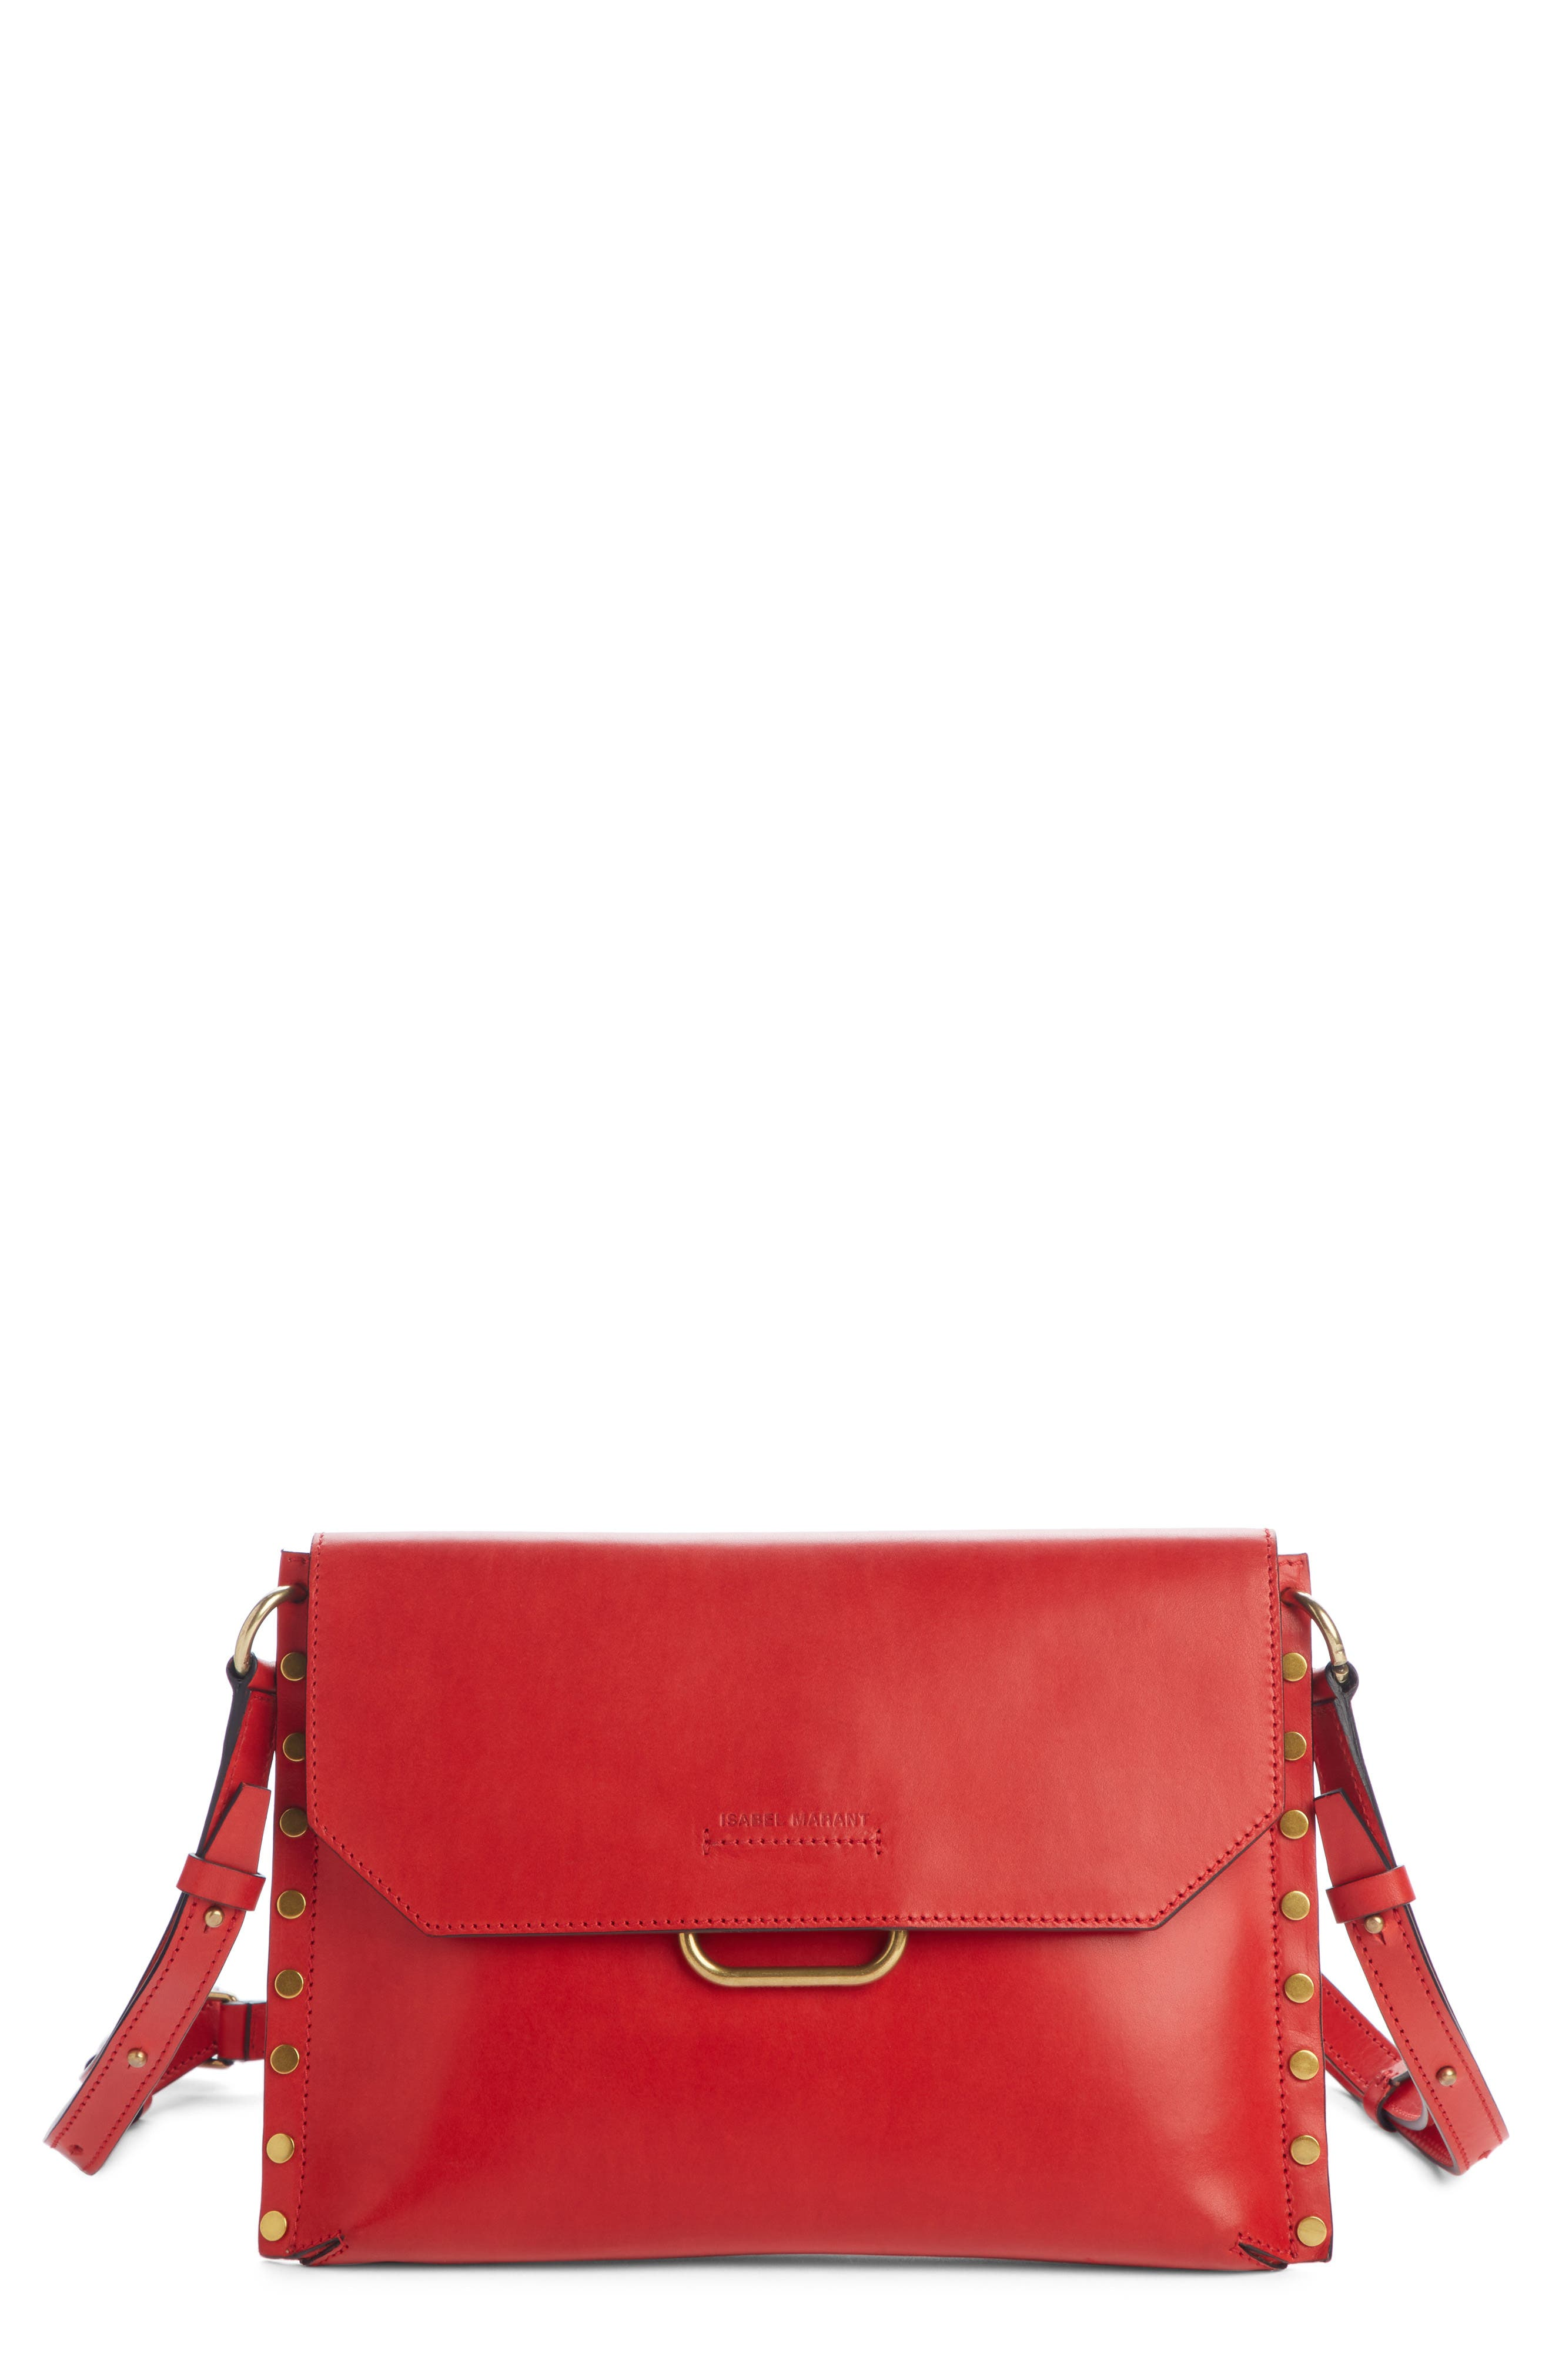 ISABEL MARANT Sinky Leather Crossbody Bag, Main, color, RED